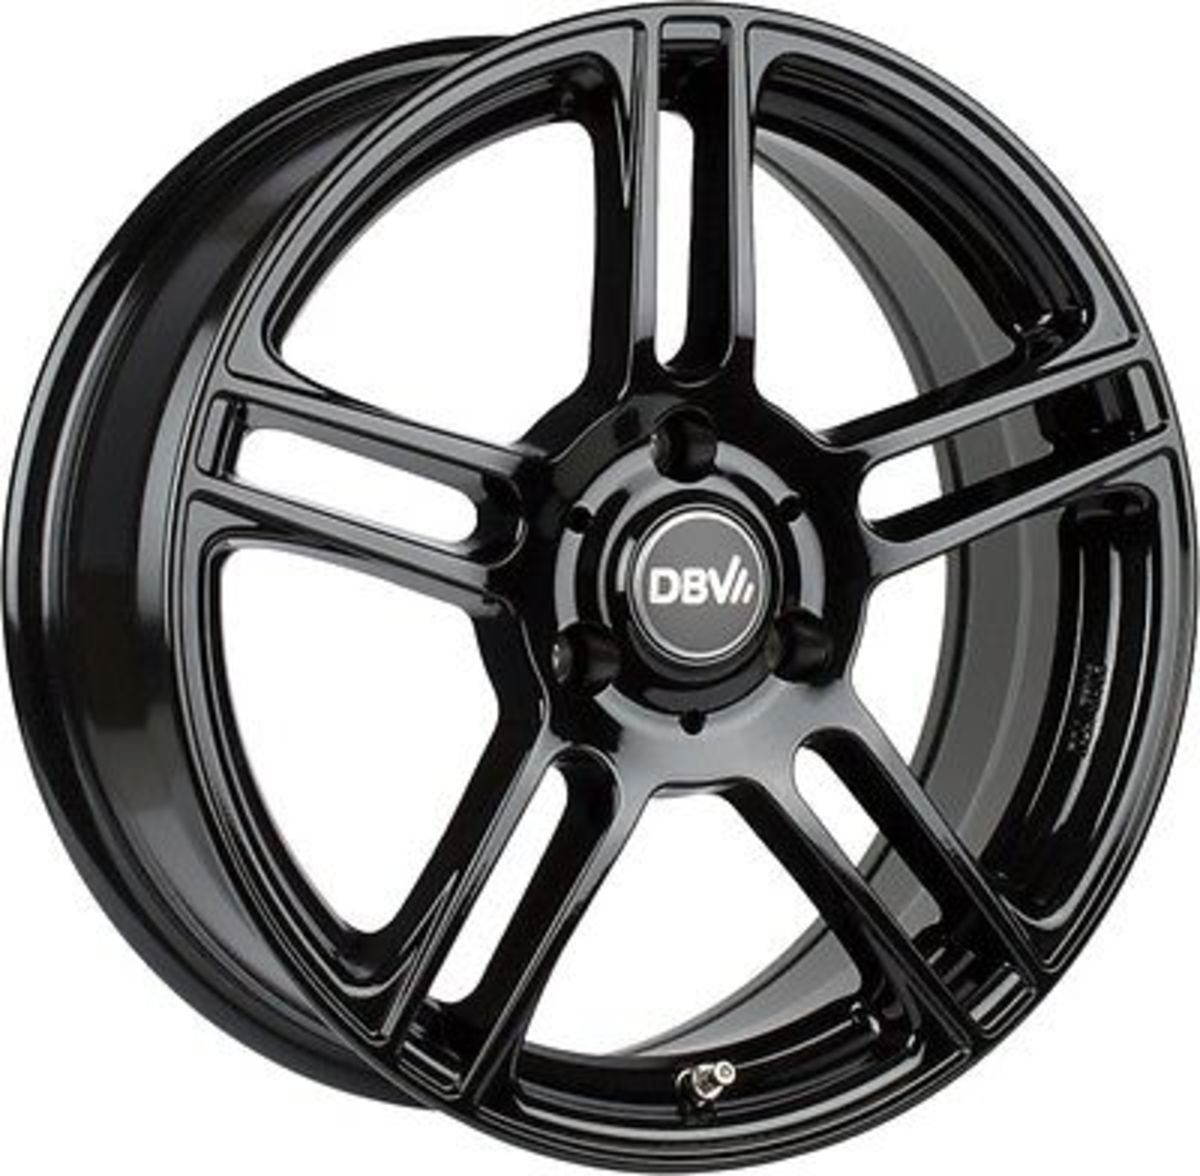 Buy Wheels Today offers some of the best online deals on Smart Car Wheels and Tires